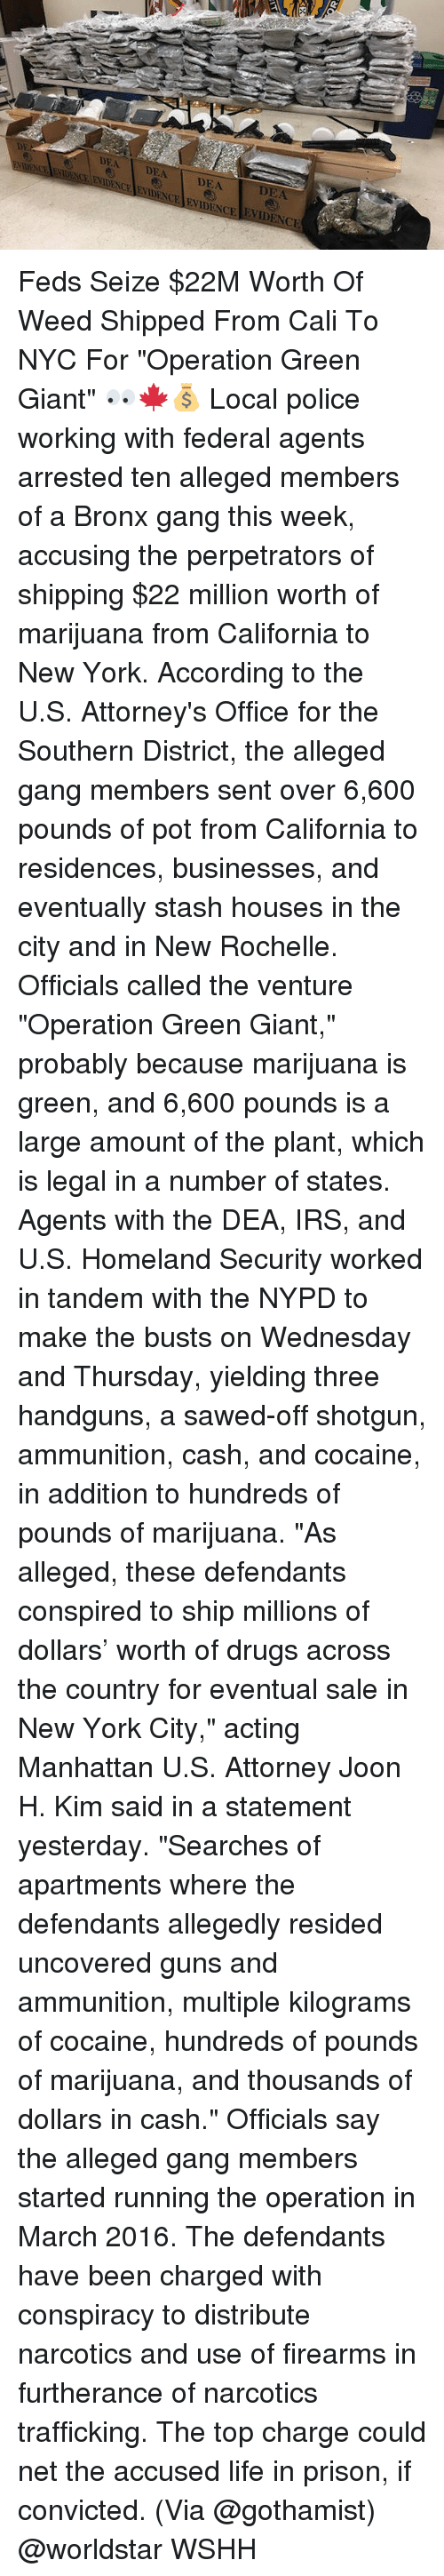 "Drugs, Guns, and Irs: DEA DEA DEA  ENCE FVACEENDENCE ENIDENCE EVIDENCIE  2  DEA Feds Seize $22M Worth Of Weed Shipped From Cali To NYC For ""Operation Green Giant"" 👀🍁💰 Local police working with federal agents arrested ten alleged members of a Bronx gang this week, accusing the perpetrators of shipping $22 million worth of marijuana from California to New York. According to the U.S. Attorney's Office for the Southern District, the alleged gang members sent over 6,600 pounds of pot from California to residences, businesses, and eventually stash houses in the city and in New Rochelle. Officials called the venture ""Operation Green Giant,"" probably because marijuana is green, and 6,600 pounds is a large amount of the plant, which is legal in a number of states. Agents with the DEA, IRS, and U.S. Homeland Security worked in tandem with the NYPD to make the busts on Wednesday and Thursday, yielding three handguns, a sawed-off shotgun, ammunition, cash, and cocaine, in addition to hundreds of pounds of marijuana. ""As alleged, these defendants conspired to ship millions of dollars' worth of drugs across the country for eventual sale in New York City,"" acting Manhattan U.S. Attorney Joon H. Kim said in a statement yesterday. ""Searches of apartments where the defendants allegedly resided uncovered guns and ammunition, multiple kilograms of cocaine, hundreds of pounds of marijuana, and thousands of dollars in cash."" Officials say the alleged gang members started running the operation in March 2016. The defendants have been charged with conspiracy to distribute narcotics and use of firearms in furtherance of narcotics trafficking. The top charge could net the accused life in prison, if convicted. (Via @gothamist) @worldstar WSHH"